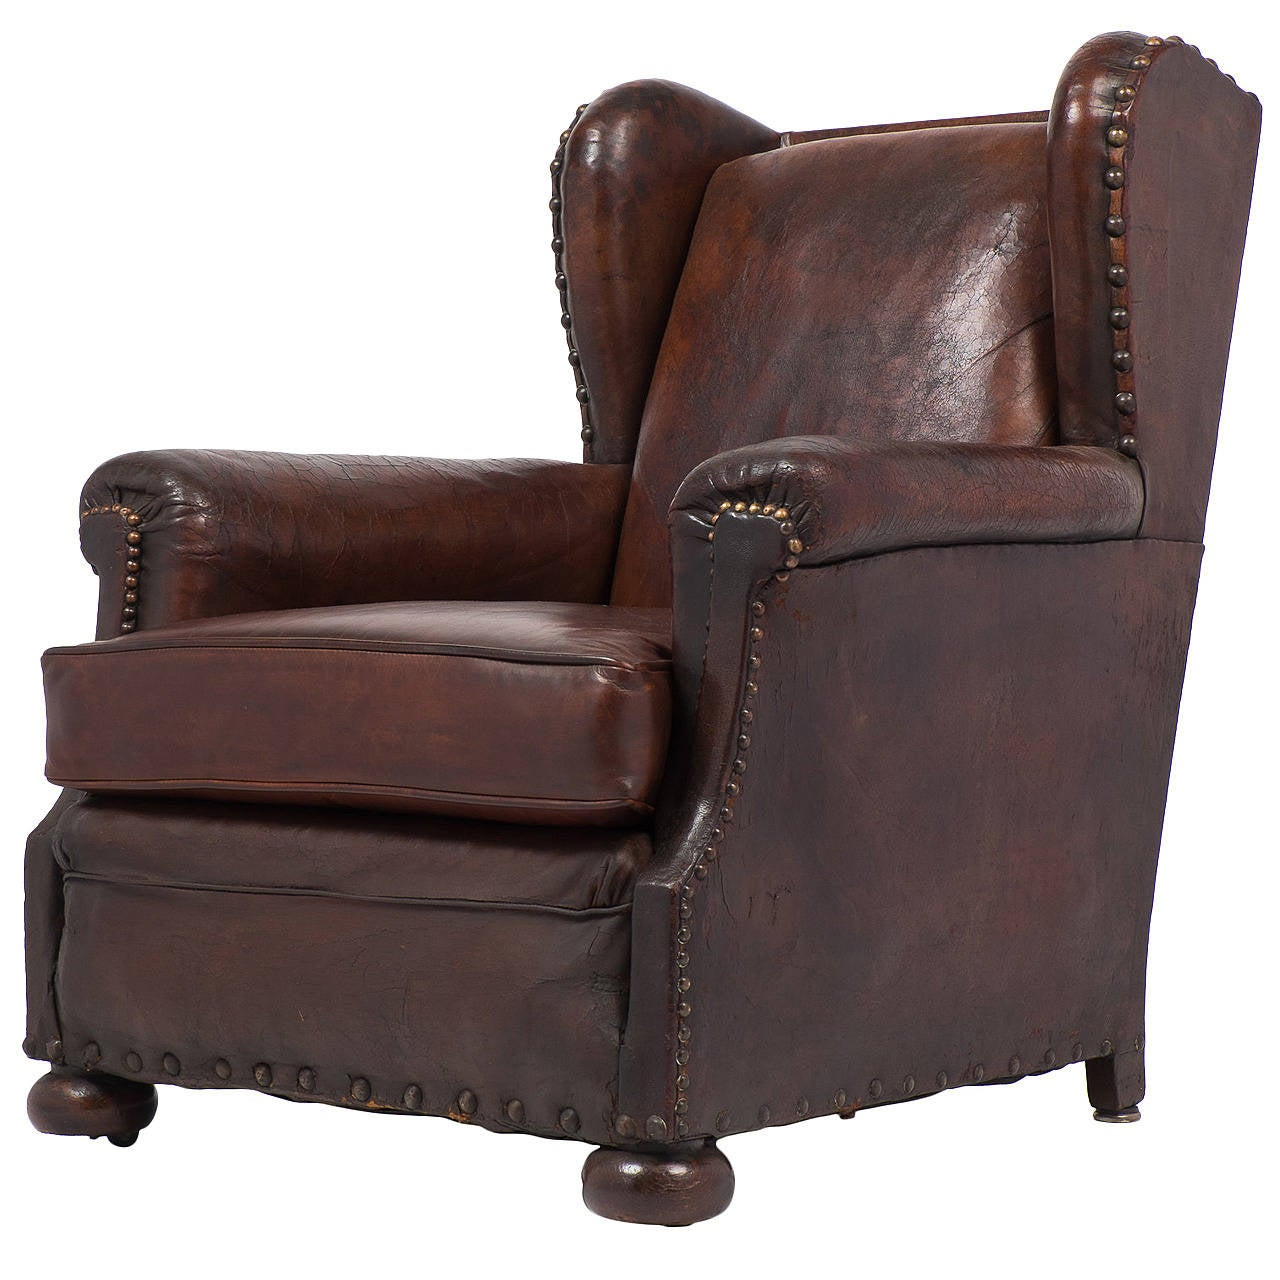 French Club Chair French Vintage Wingback Leather Club Chair For Sale At 1stdibs